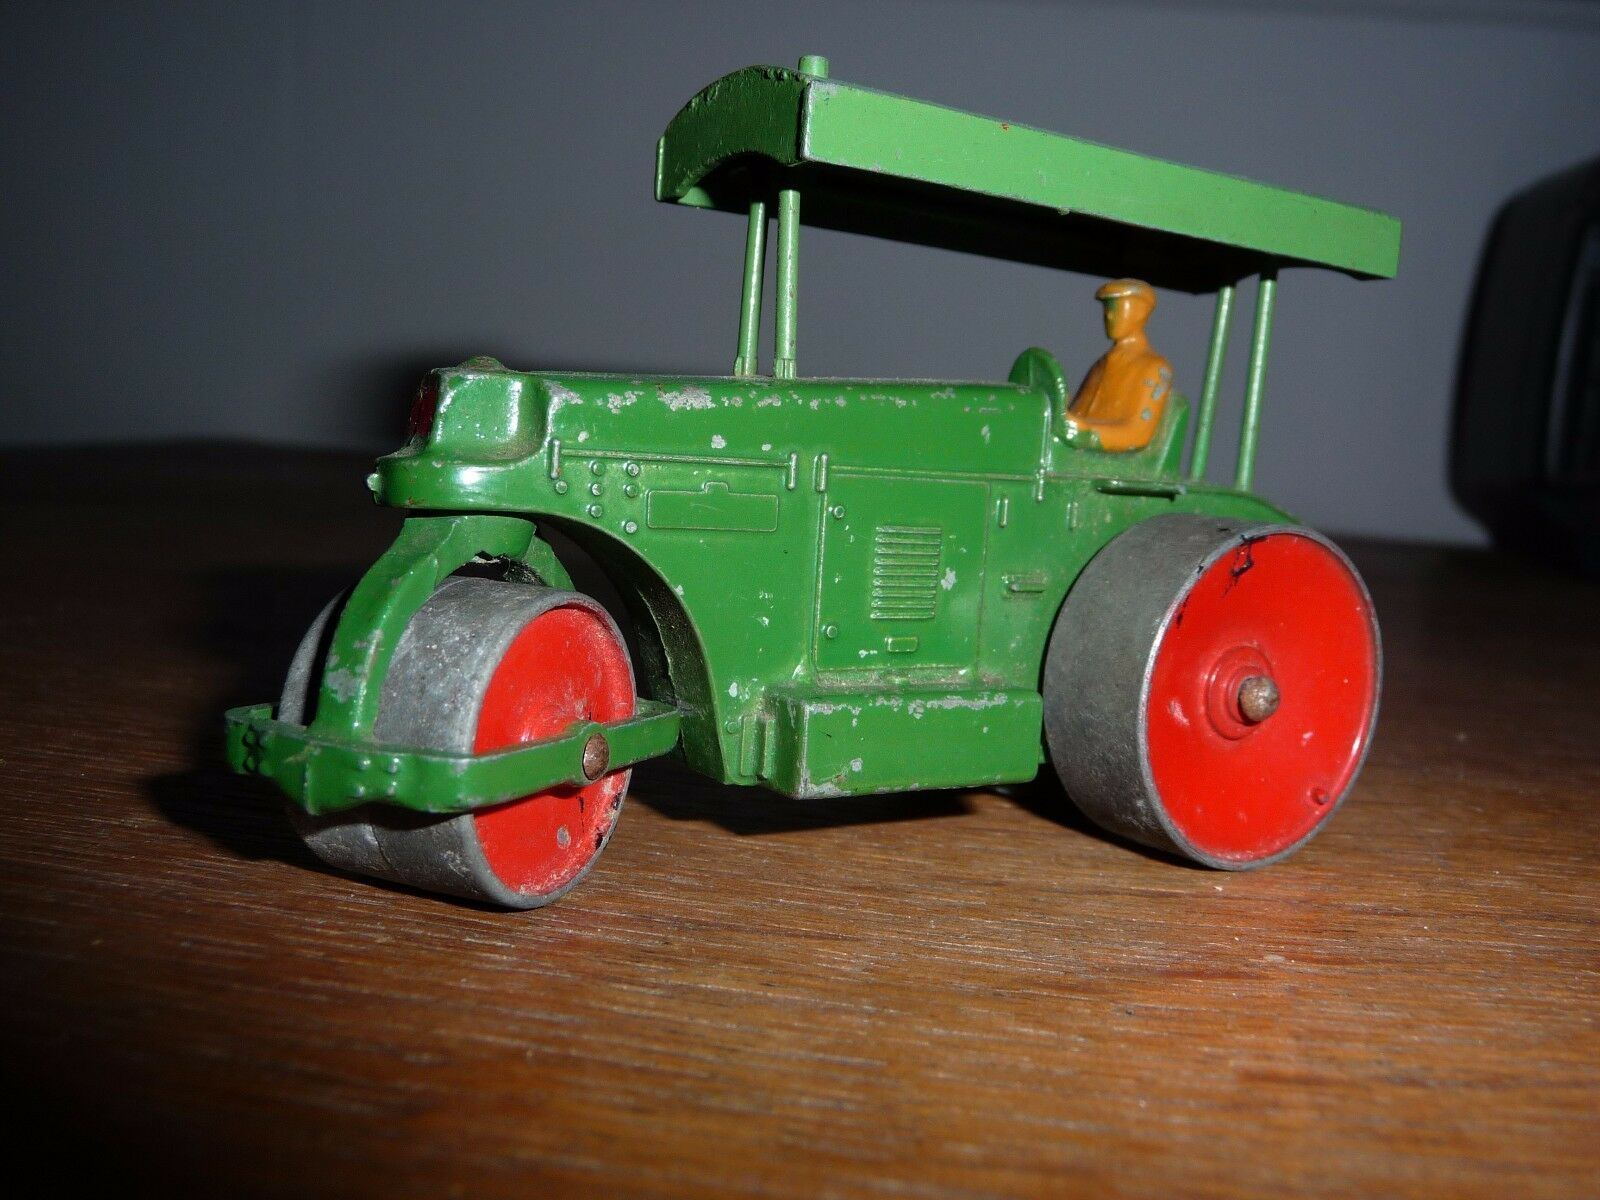 Superbe   DINKY TOYS Rouleau compresseur AVELING-BARFORD vrai Dinky pas repro